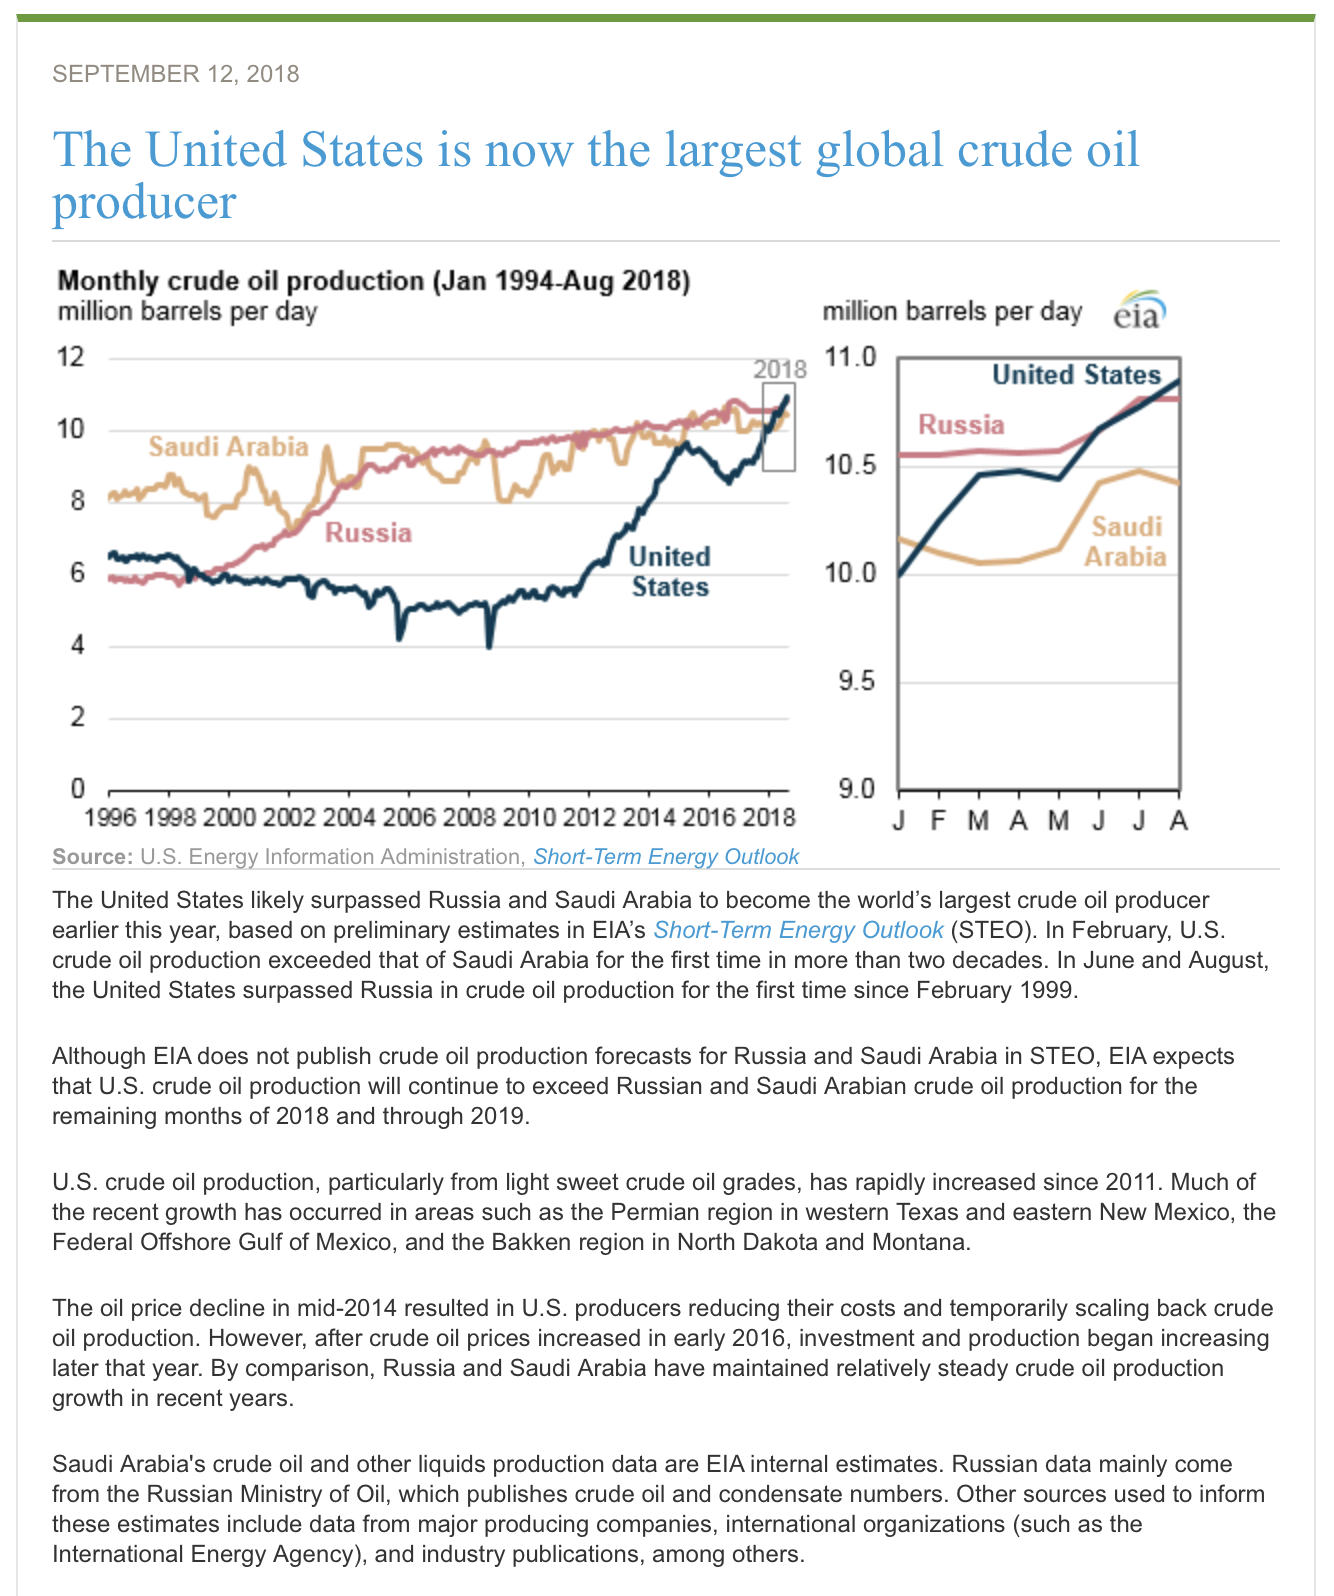 let s take a closer look oil production statistics for the united states followed by an analysis of why washington seems convinced that america has reached